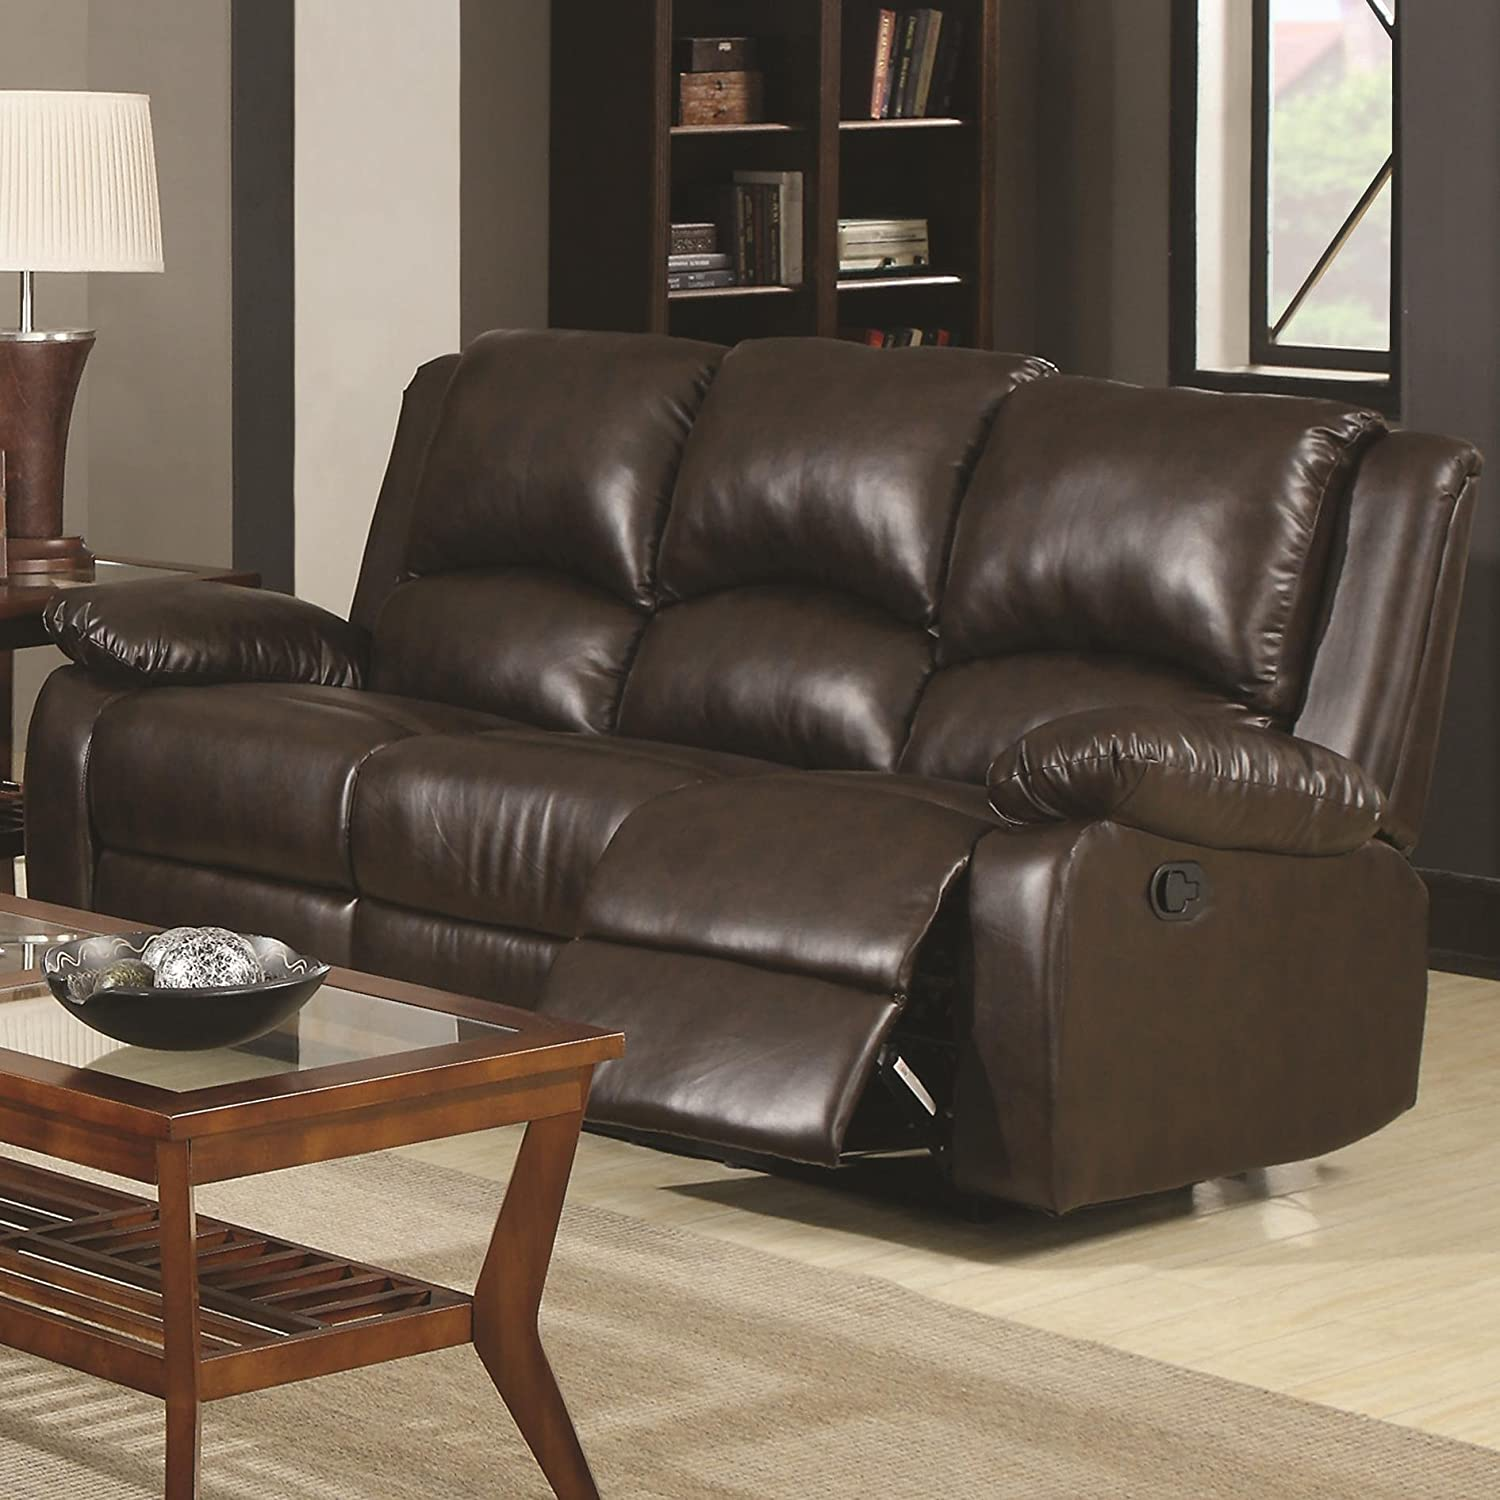 Amazon.com Coaster Home Furnishings 600971 Casual Motion Sofa Brown Kitchen u0026 Dining & Amazon.com: Coaster Home Furnishings 600971 Casual Motion Sofa ... islam-shia.org